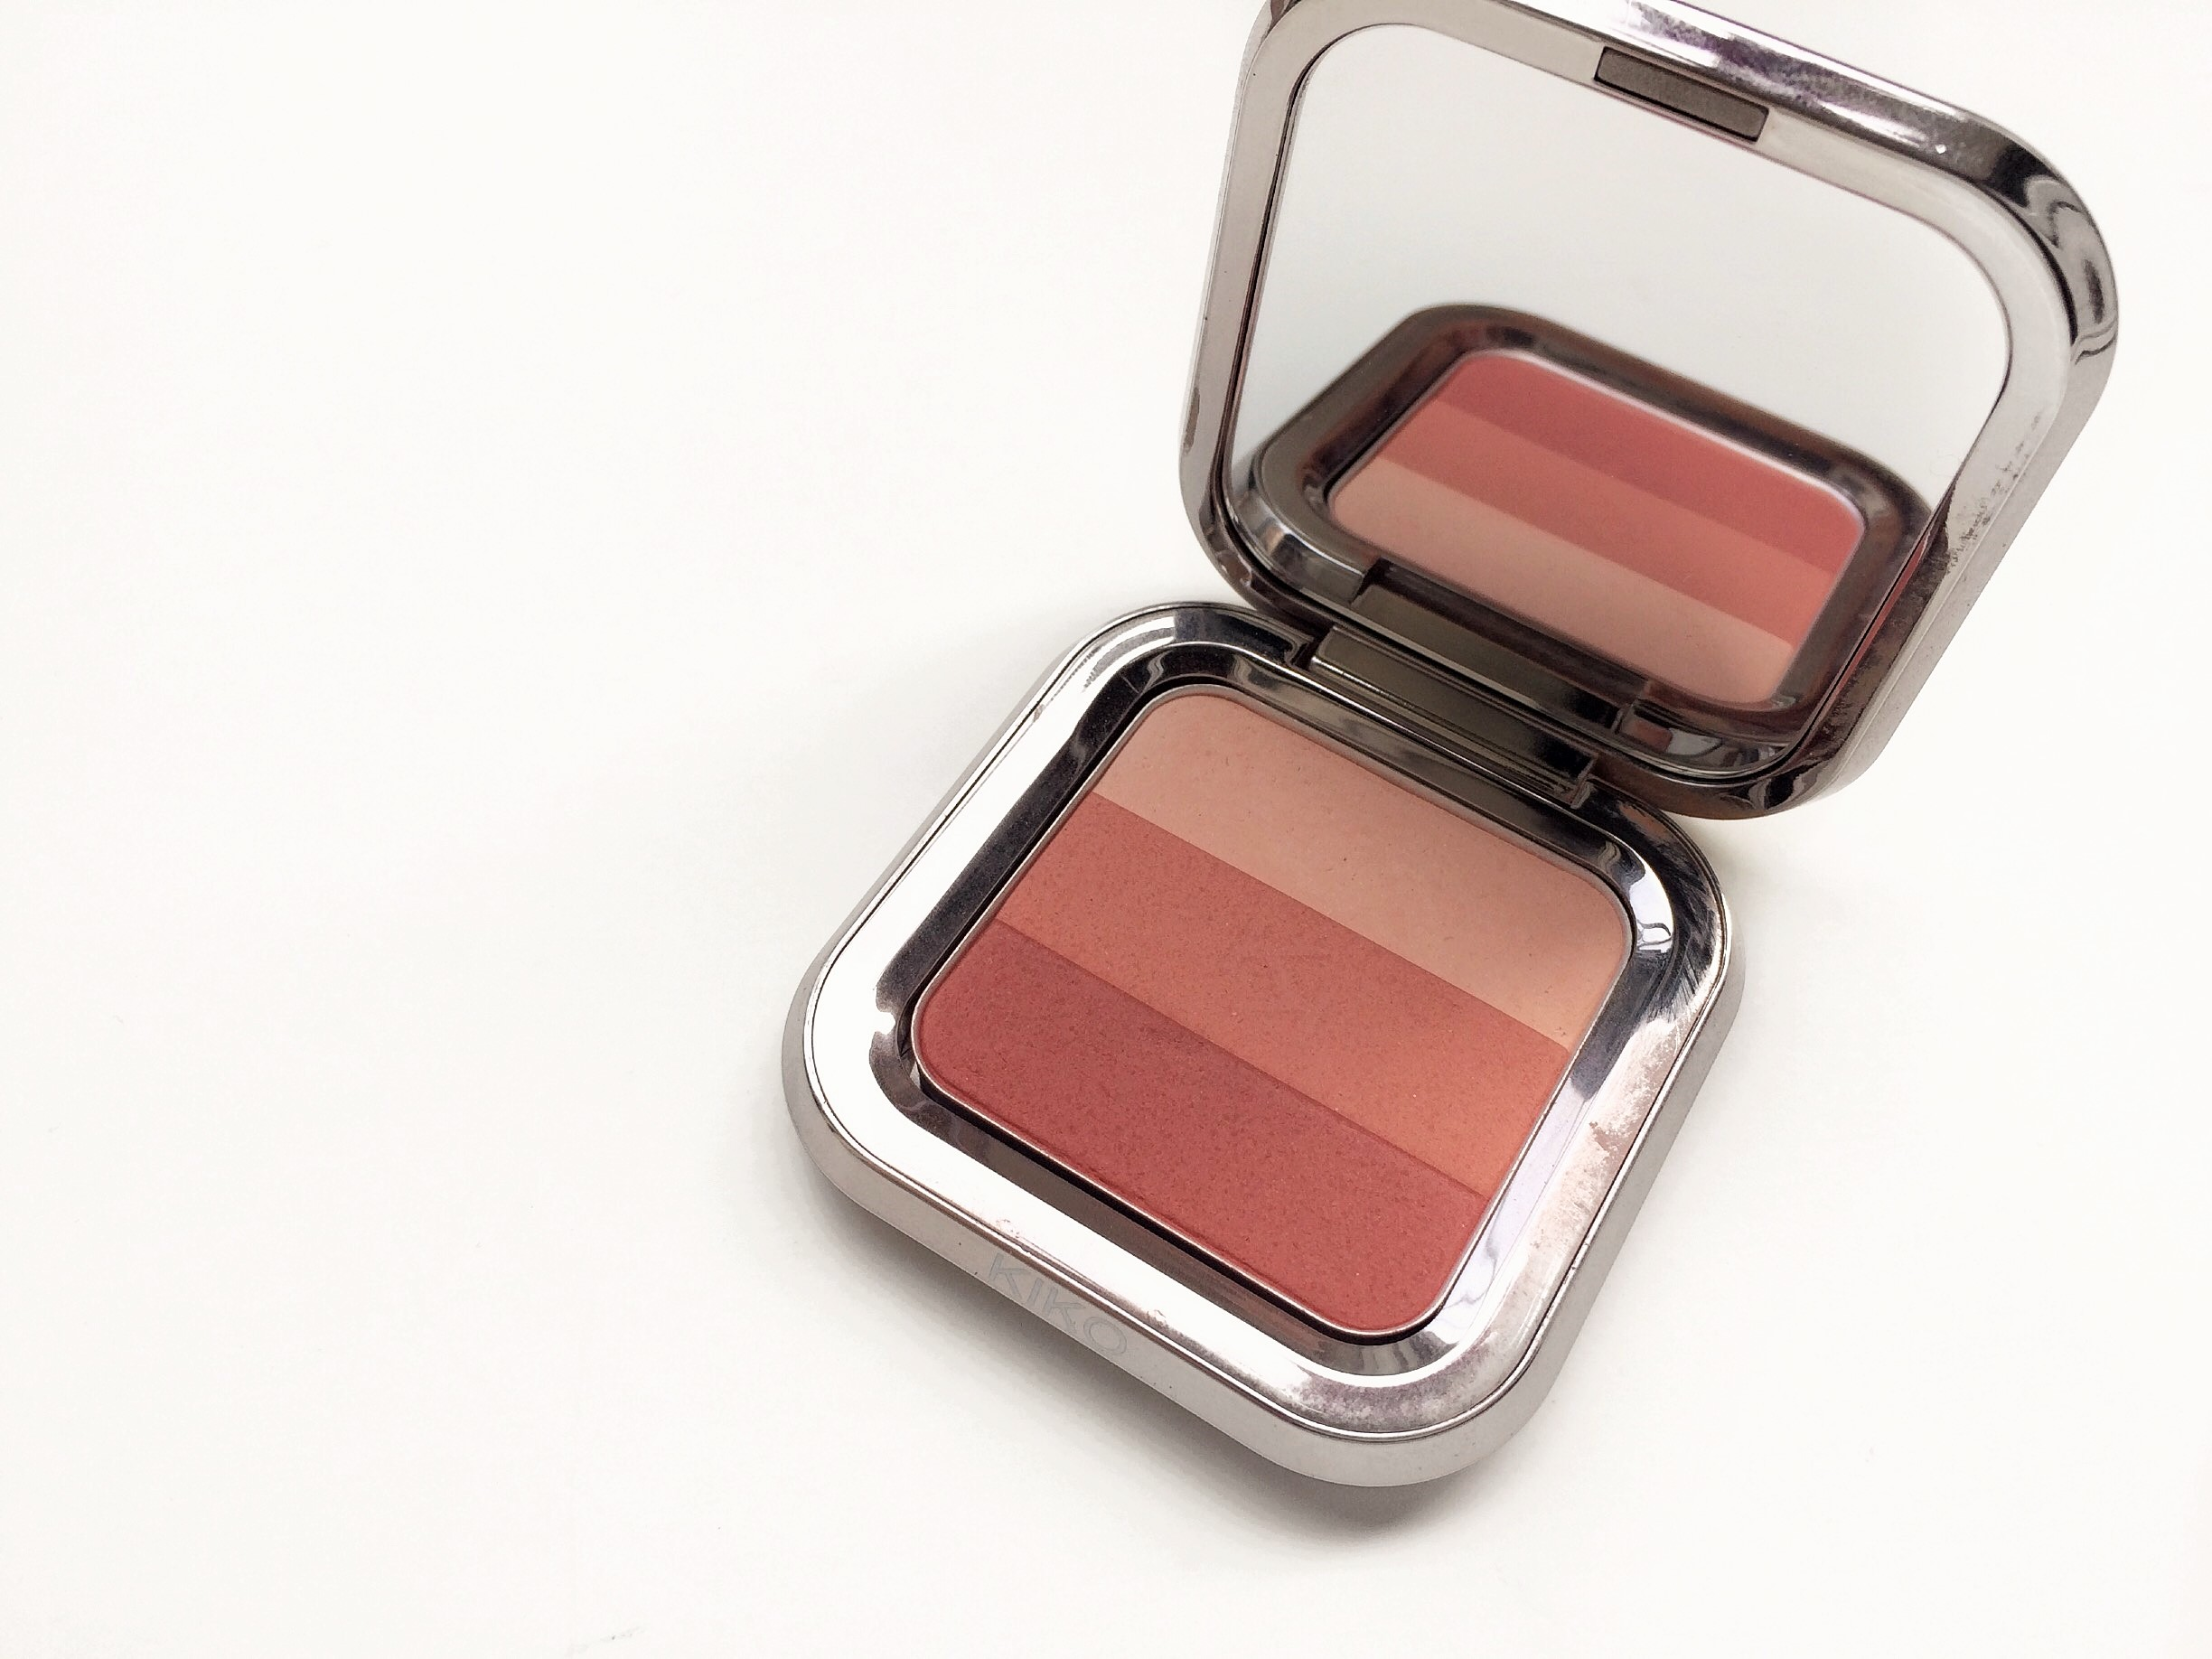 Kiko Shade Fushion Blush Trio Review and Swatches (3)